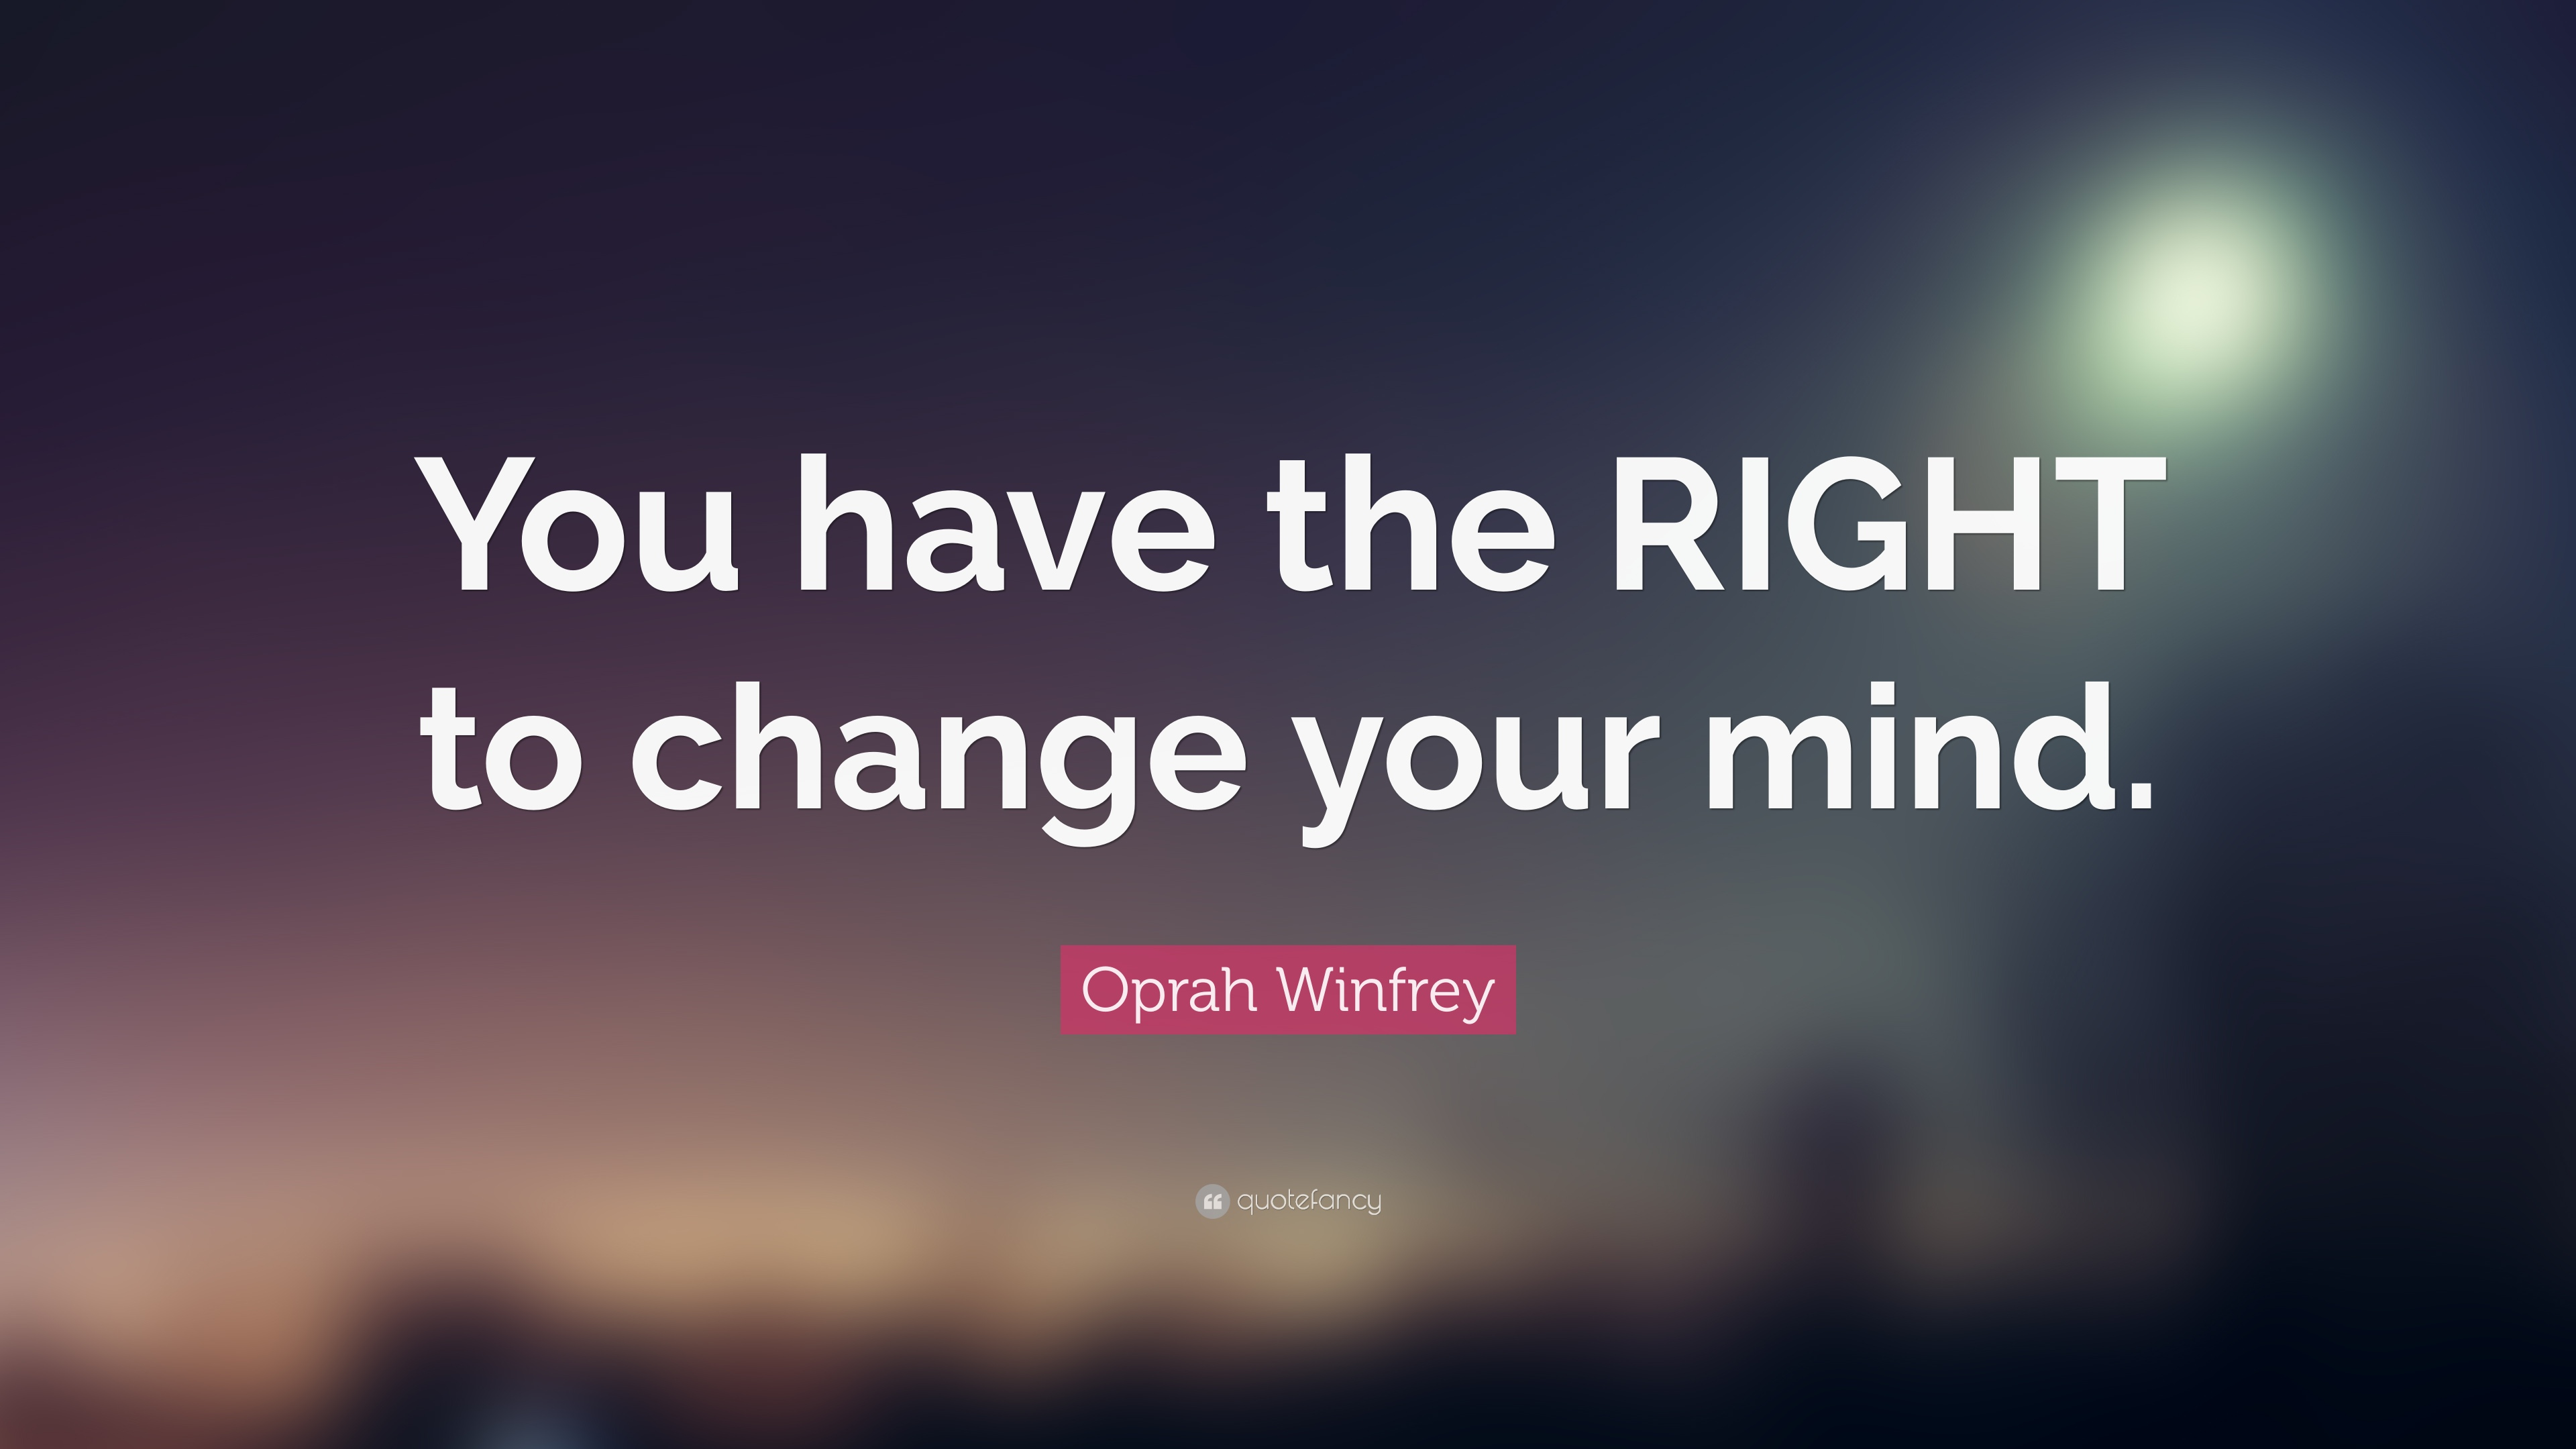 oprah winfrey quote you have the right to change your mind 7